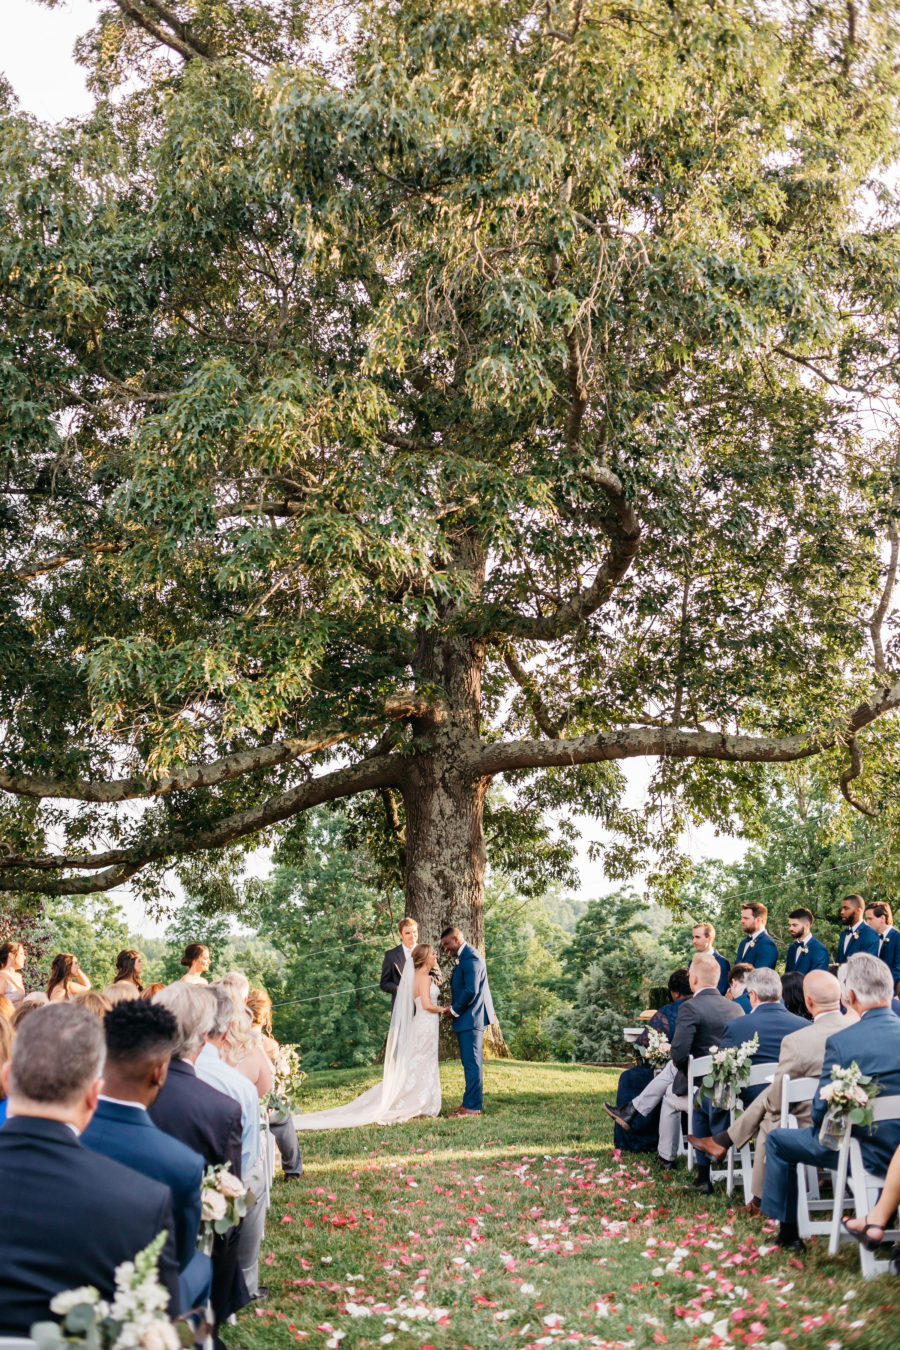 Outdoor wedding ceremony inspiration: Rustic Front Porch Farms wedding featured on Nashville Bride Guide